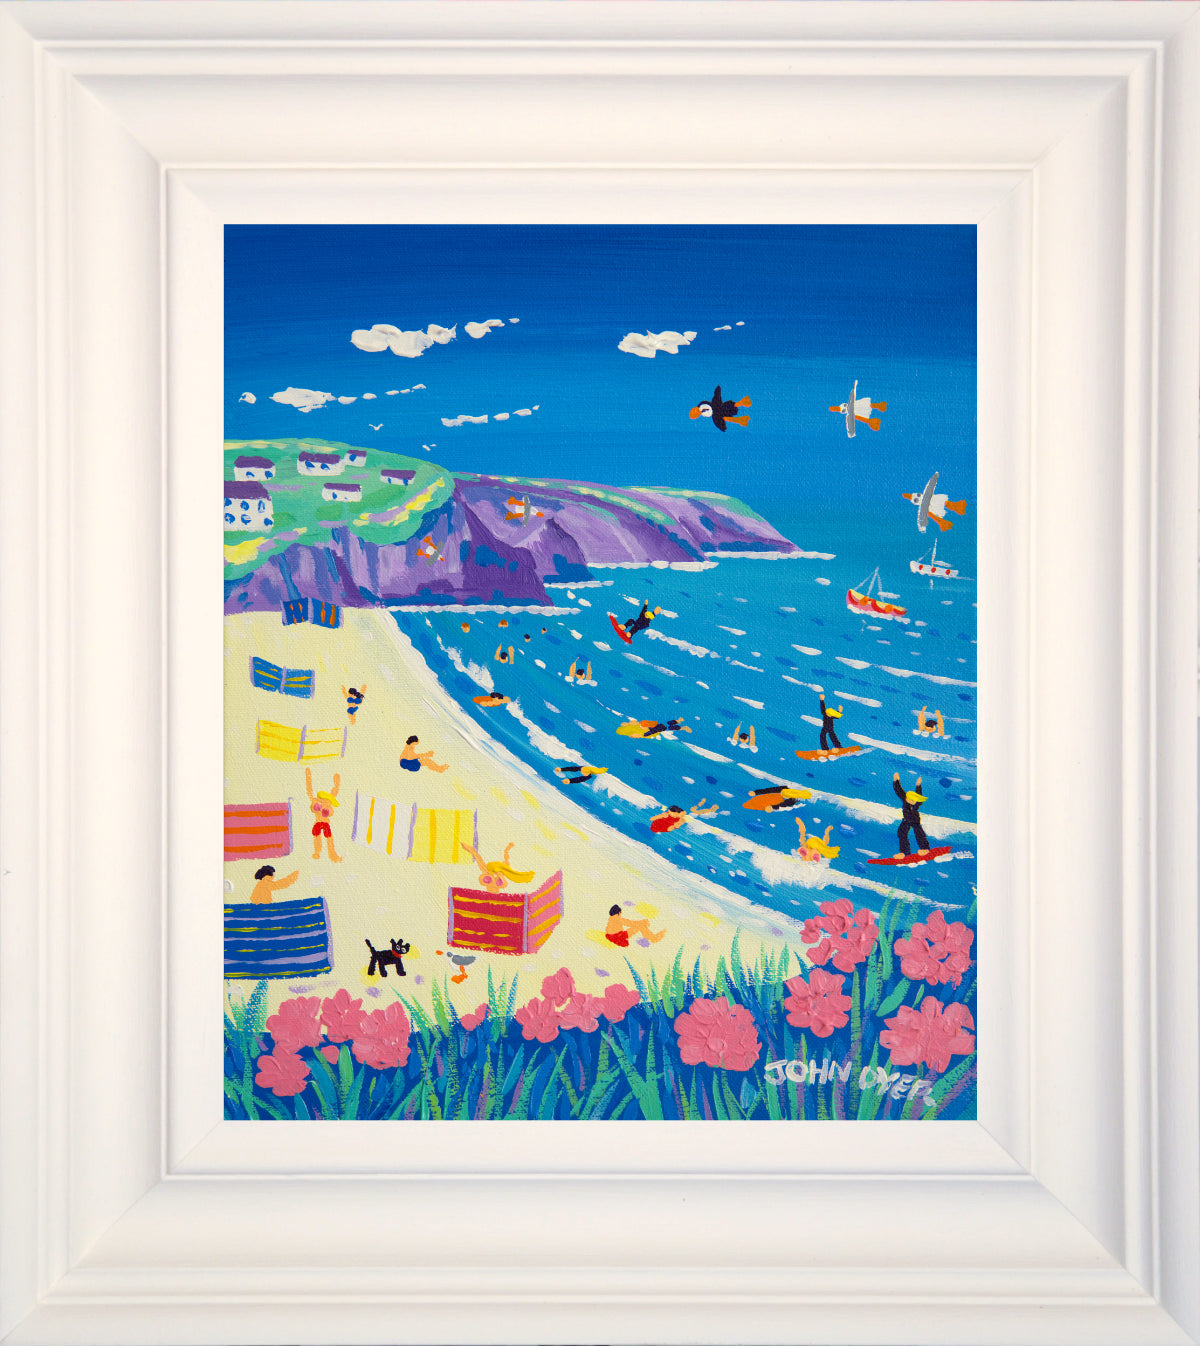 John Dyer Painting. A Day at the Beach, Porthtowan